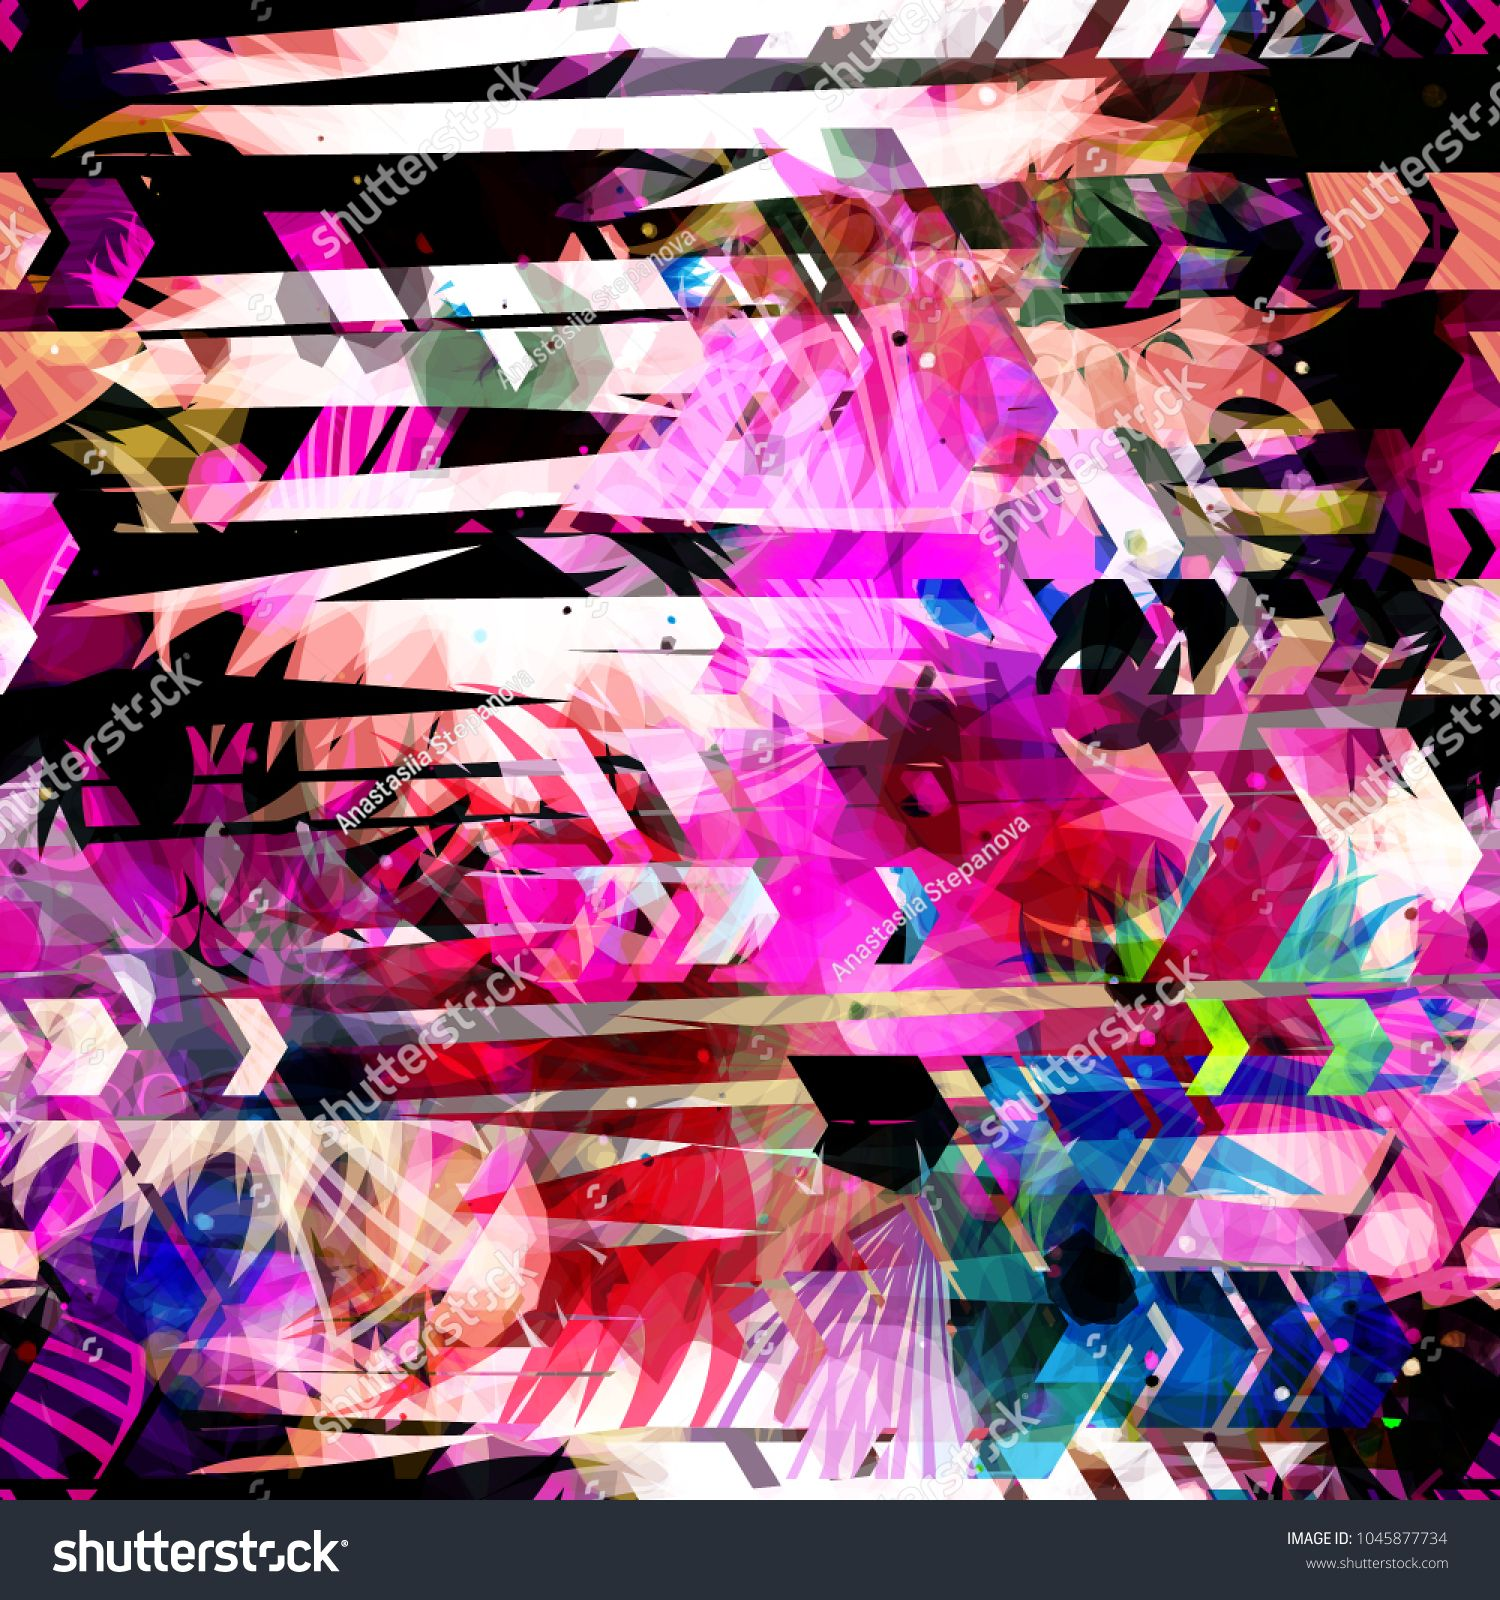 b3794d16 Abstract vector background for web page, banners backdrop, fabric, home  decor, wrapping, girls design white#Pink#stripes#colors